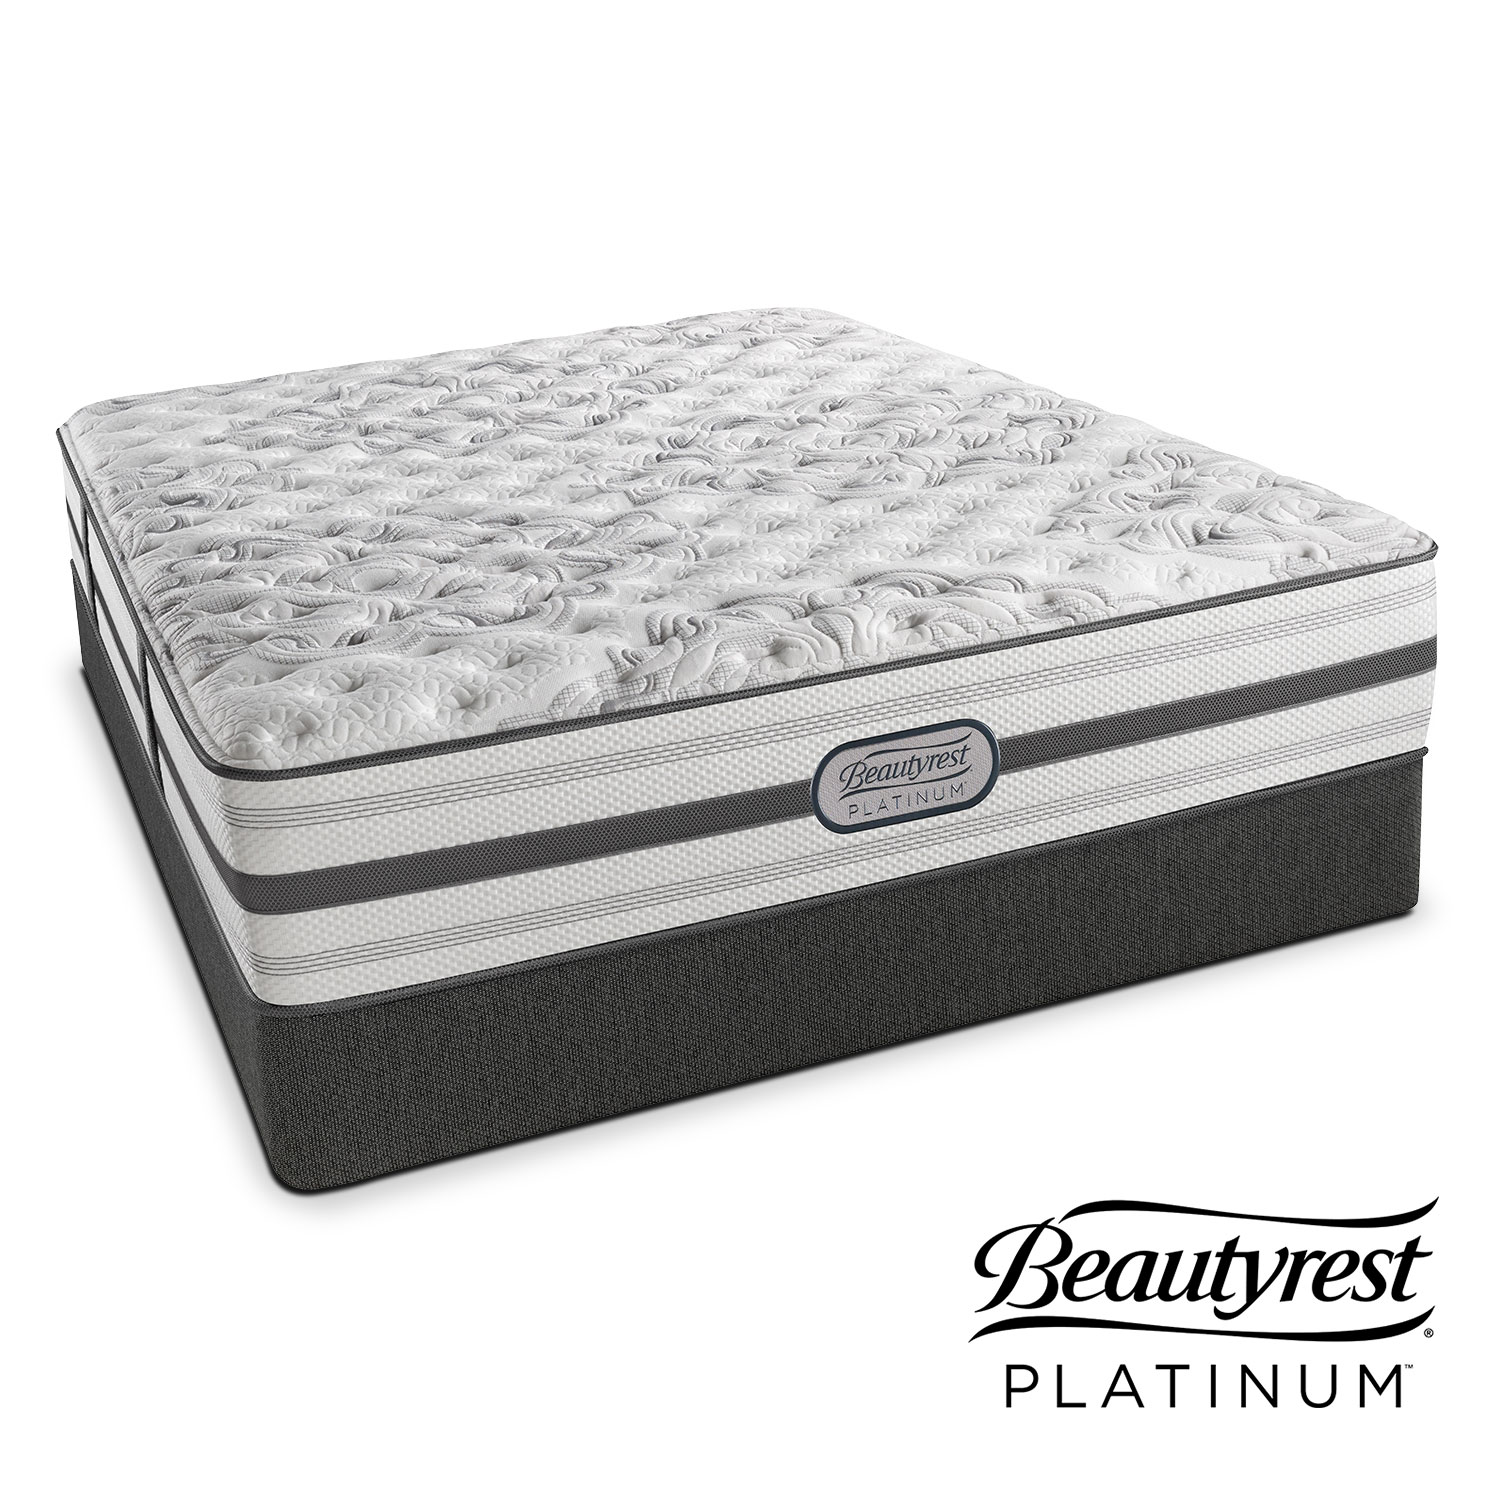 Mattresses and Bedding - Helena Queen Mattress/Low-Profile Foundation Set